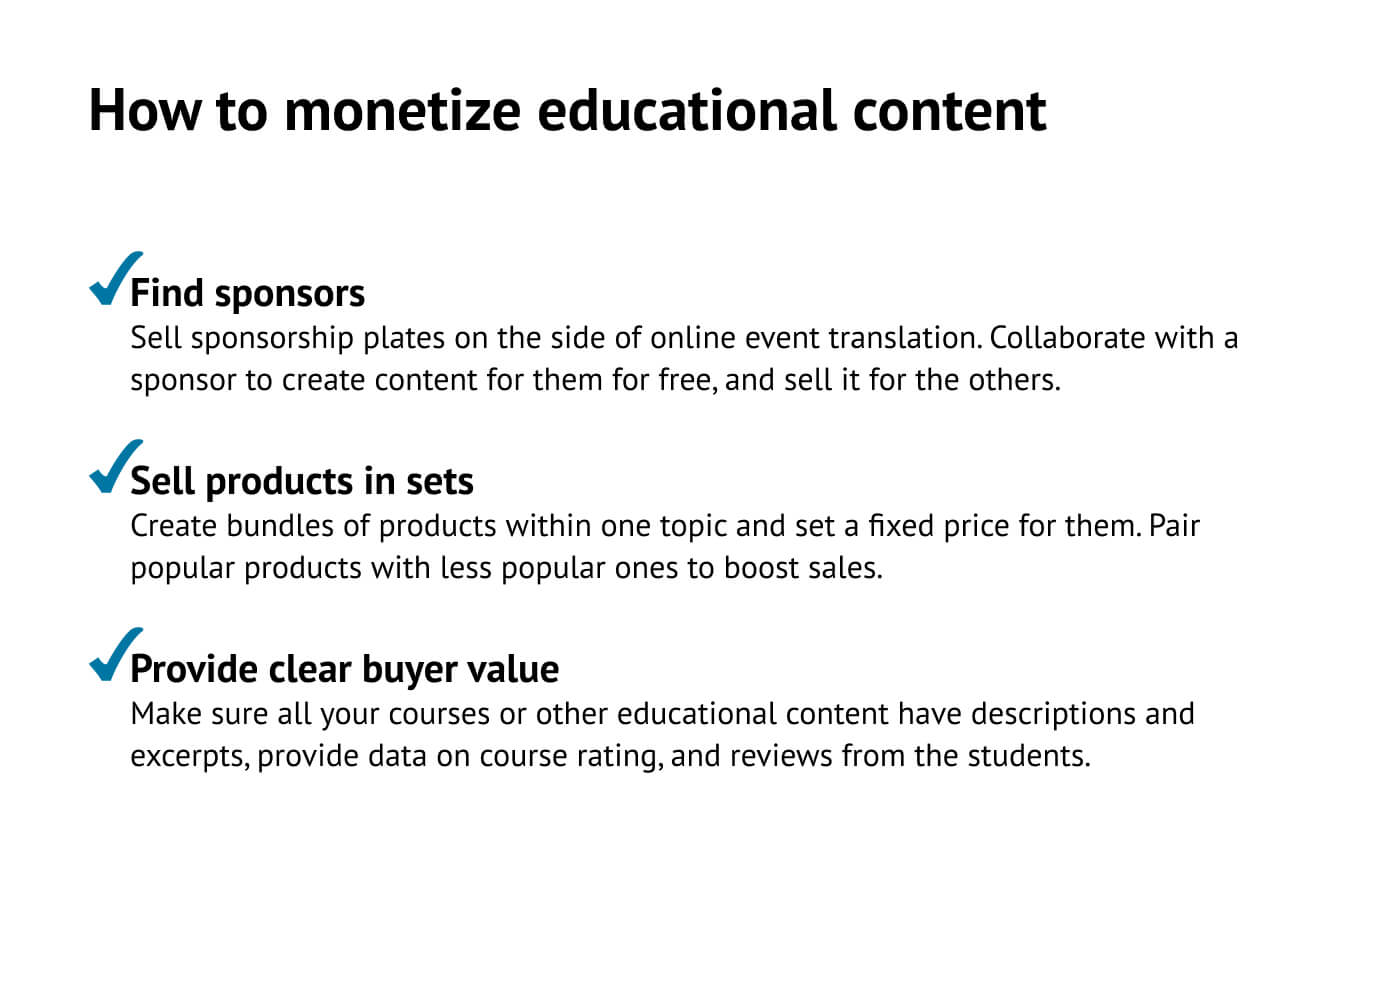 How to monetize educational content